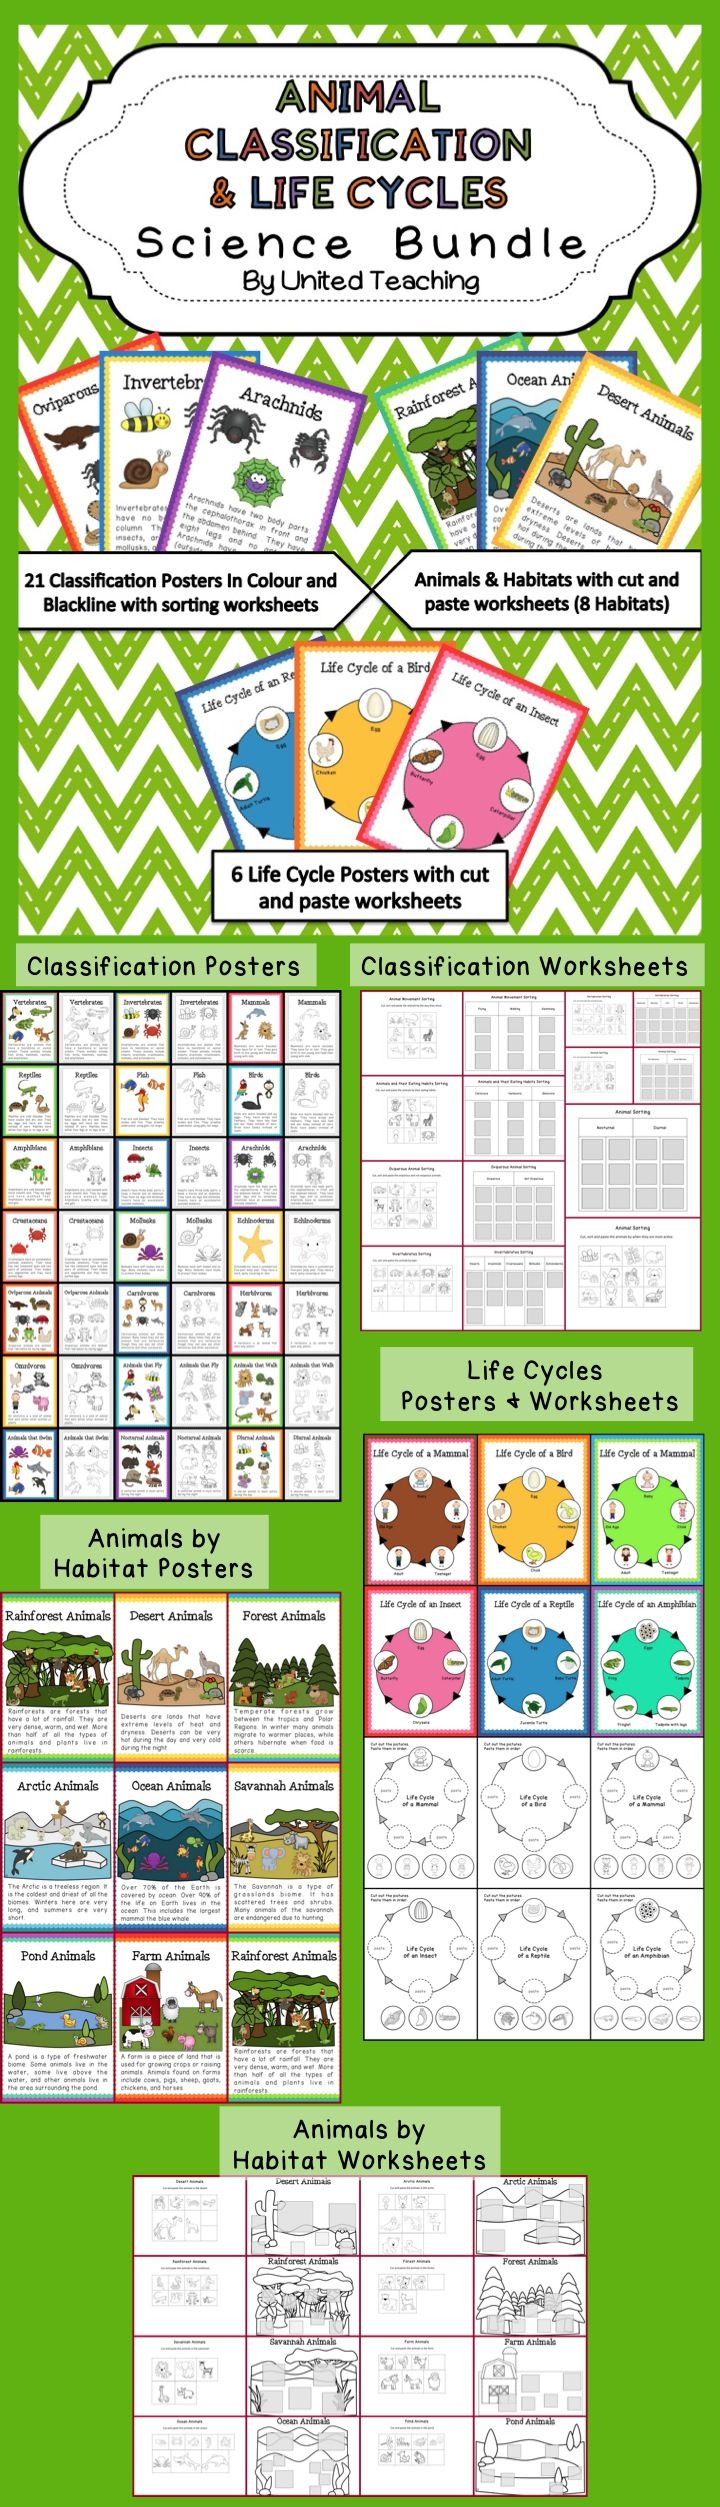 Free Worksheet Horticulture Worksheets 1000 images about plants on pinterest the plant life cycles animal classification science bundle